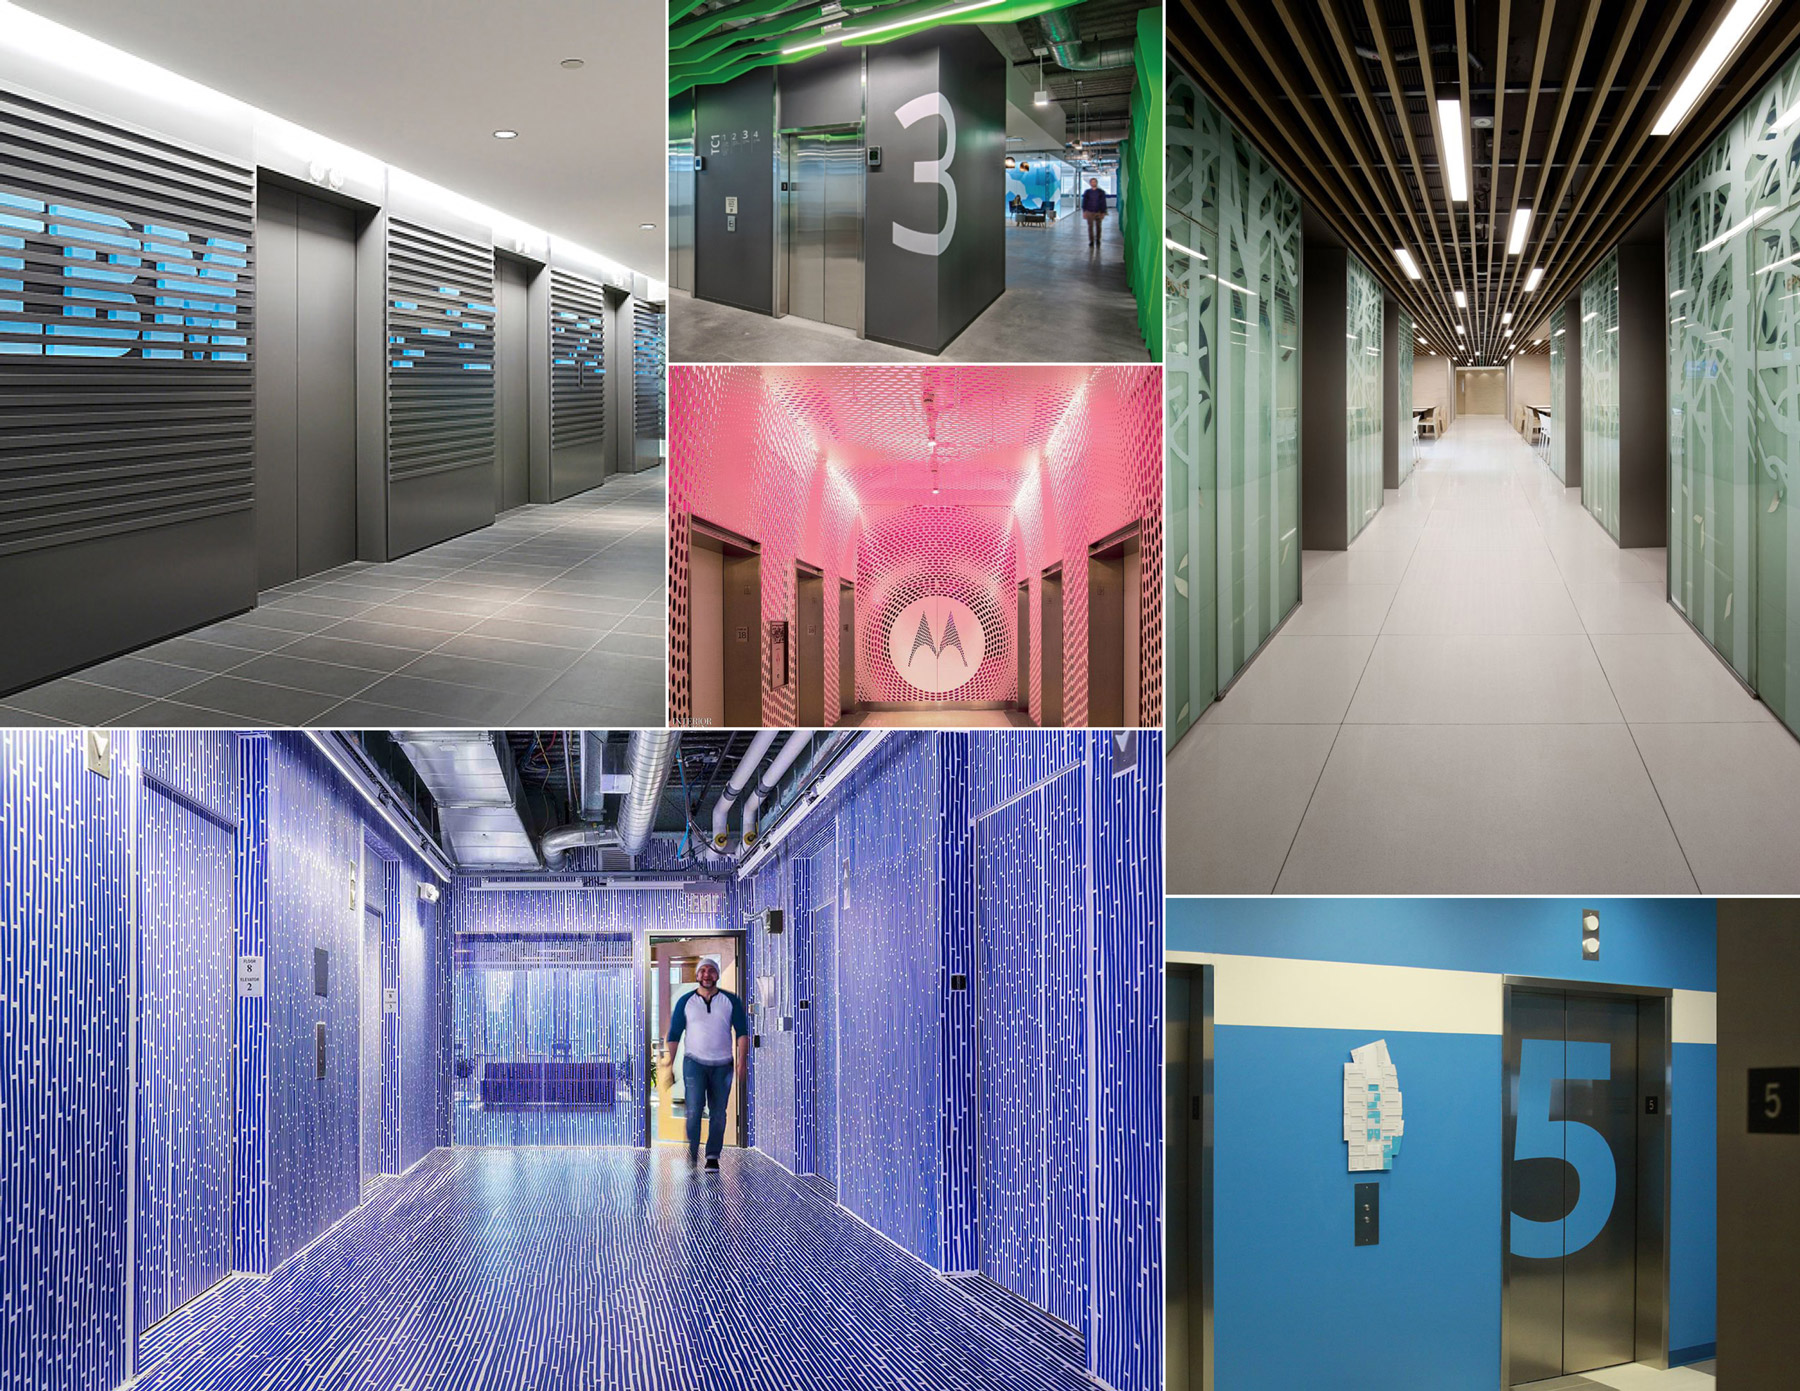 Qualcomm competitor analysis of other companies' environmental design for elevator lobbies